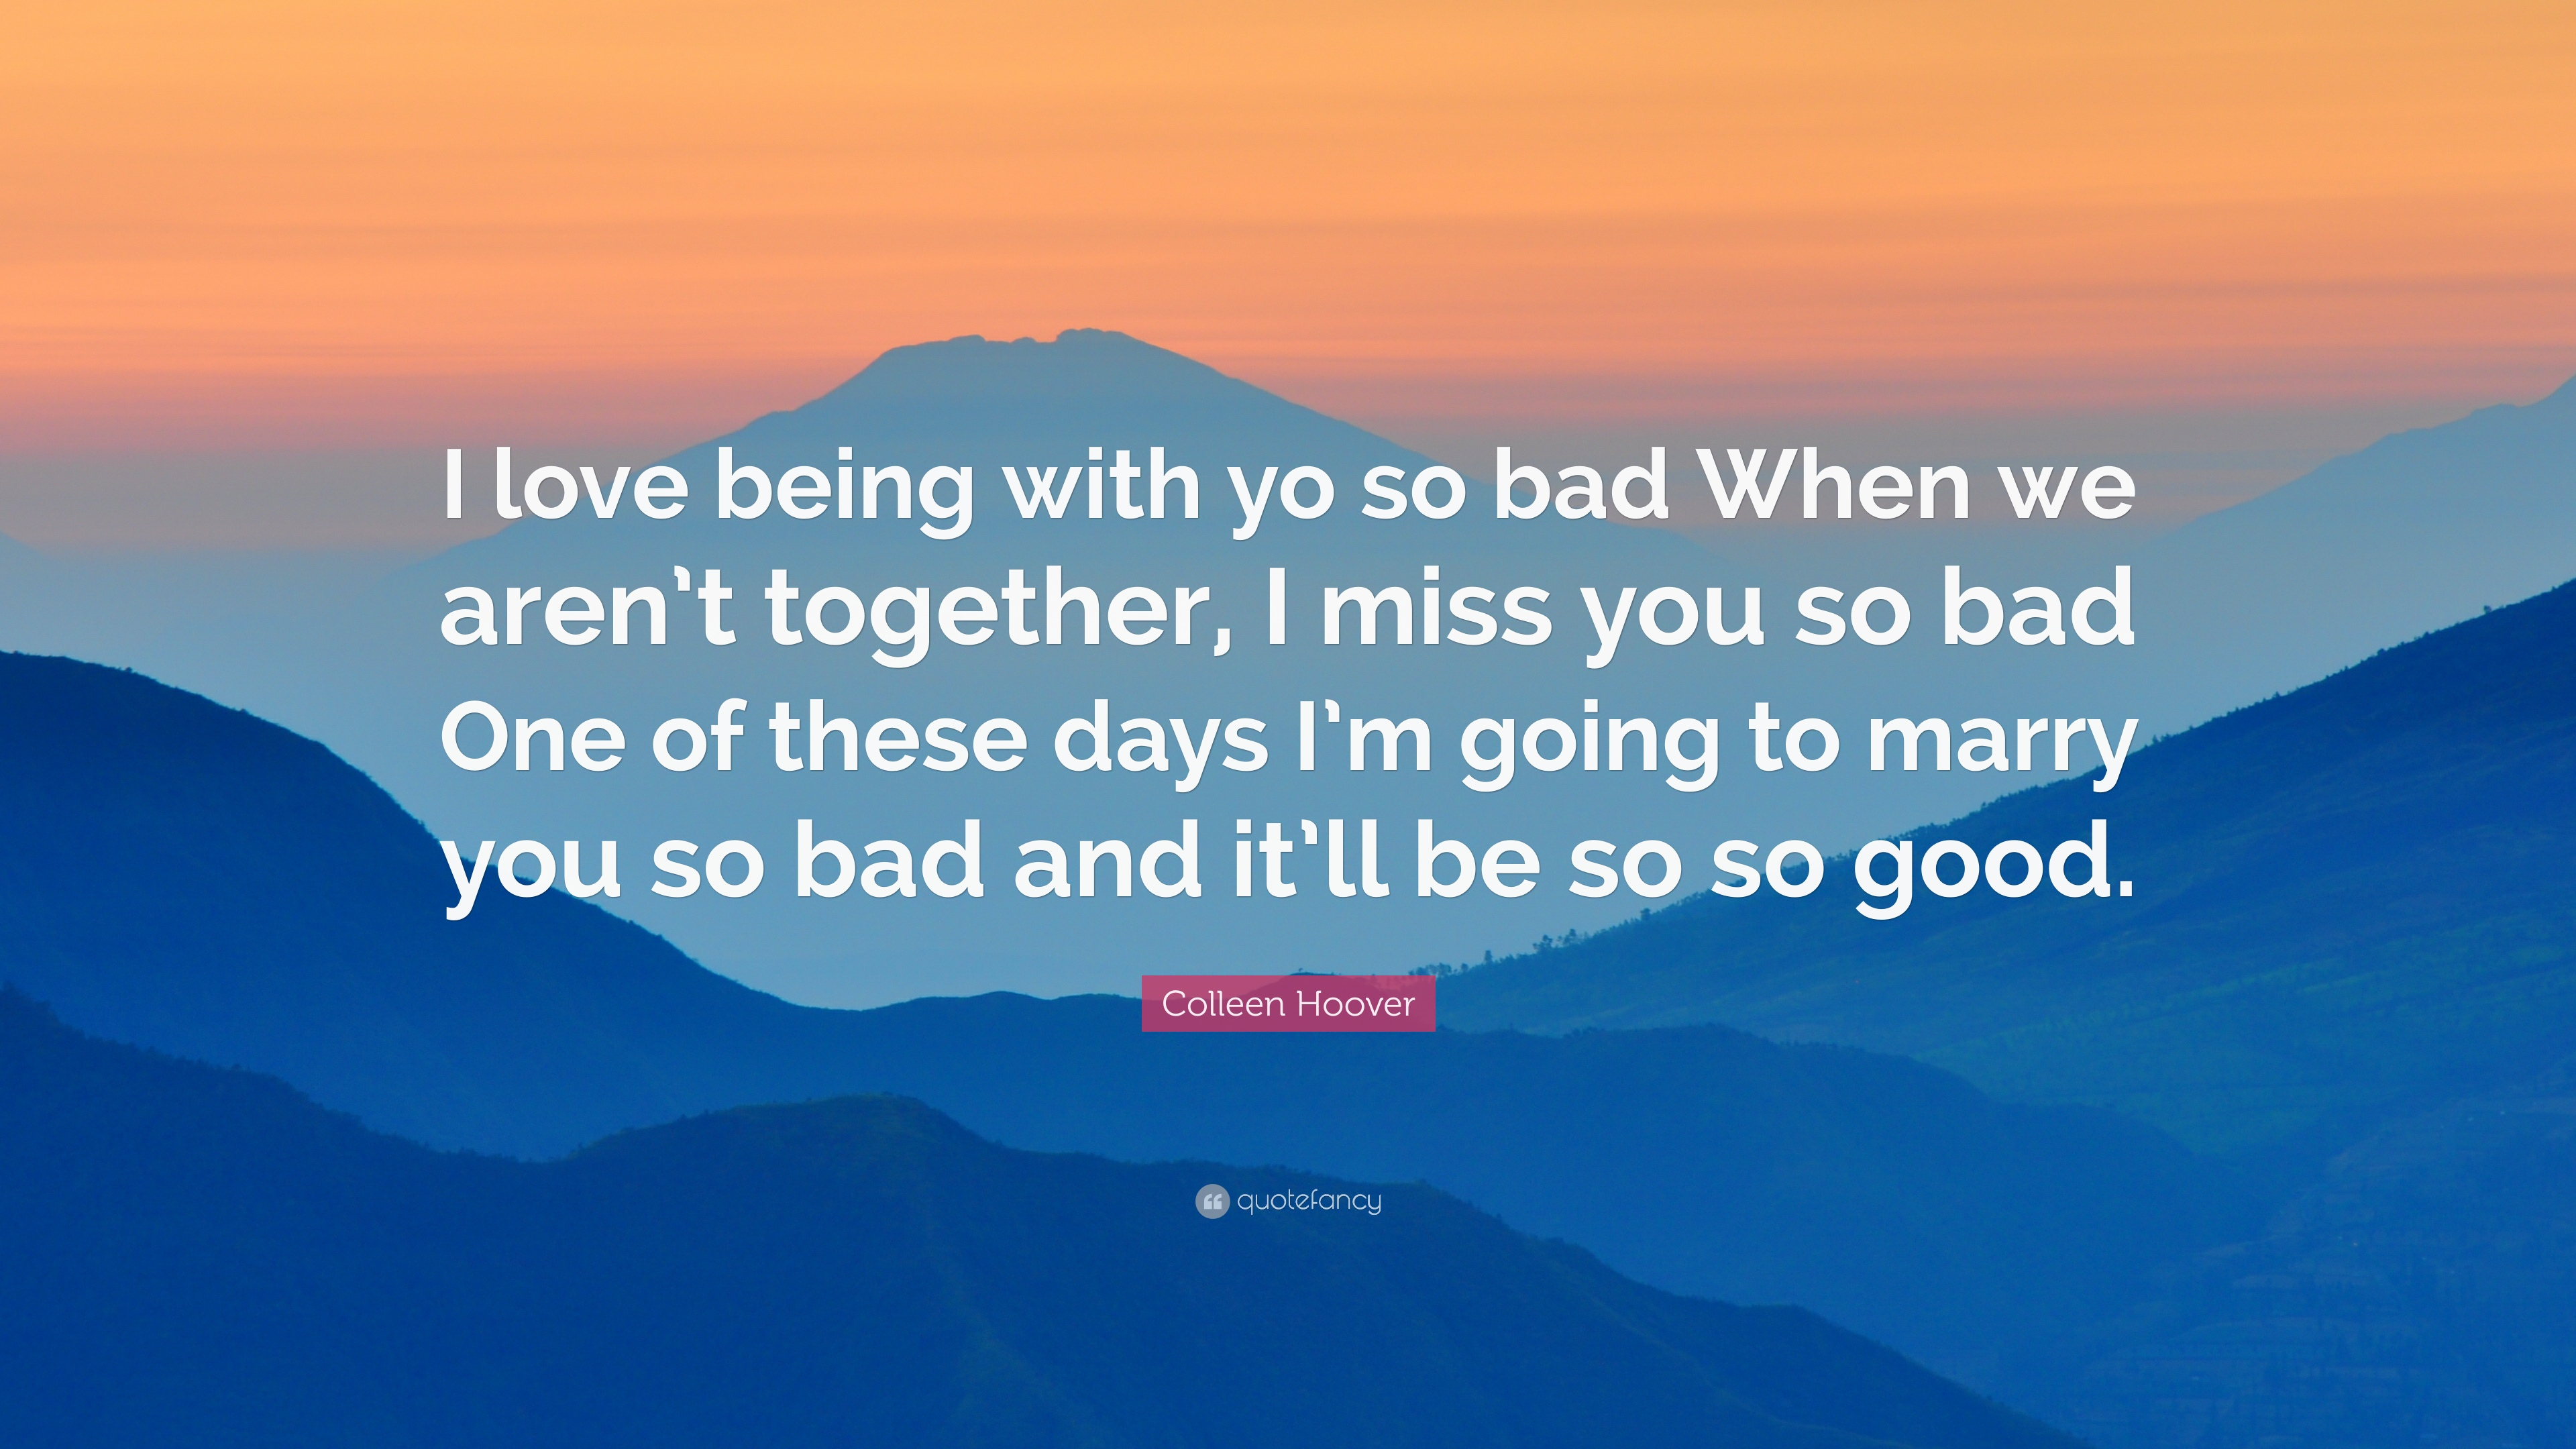 Colleen Hoover Quote I Love Being With Yo So Bad When We Arent